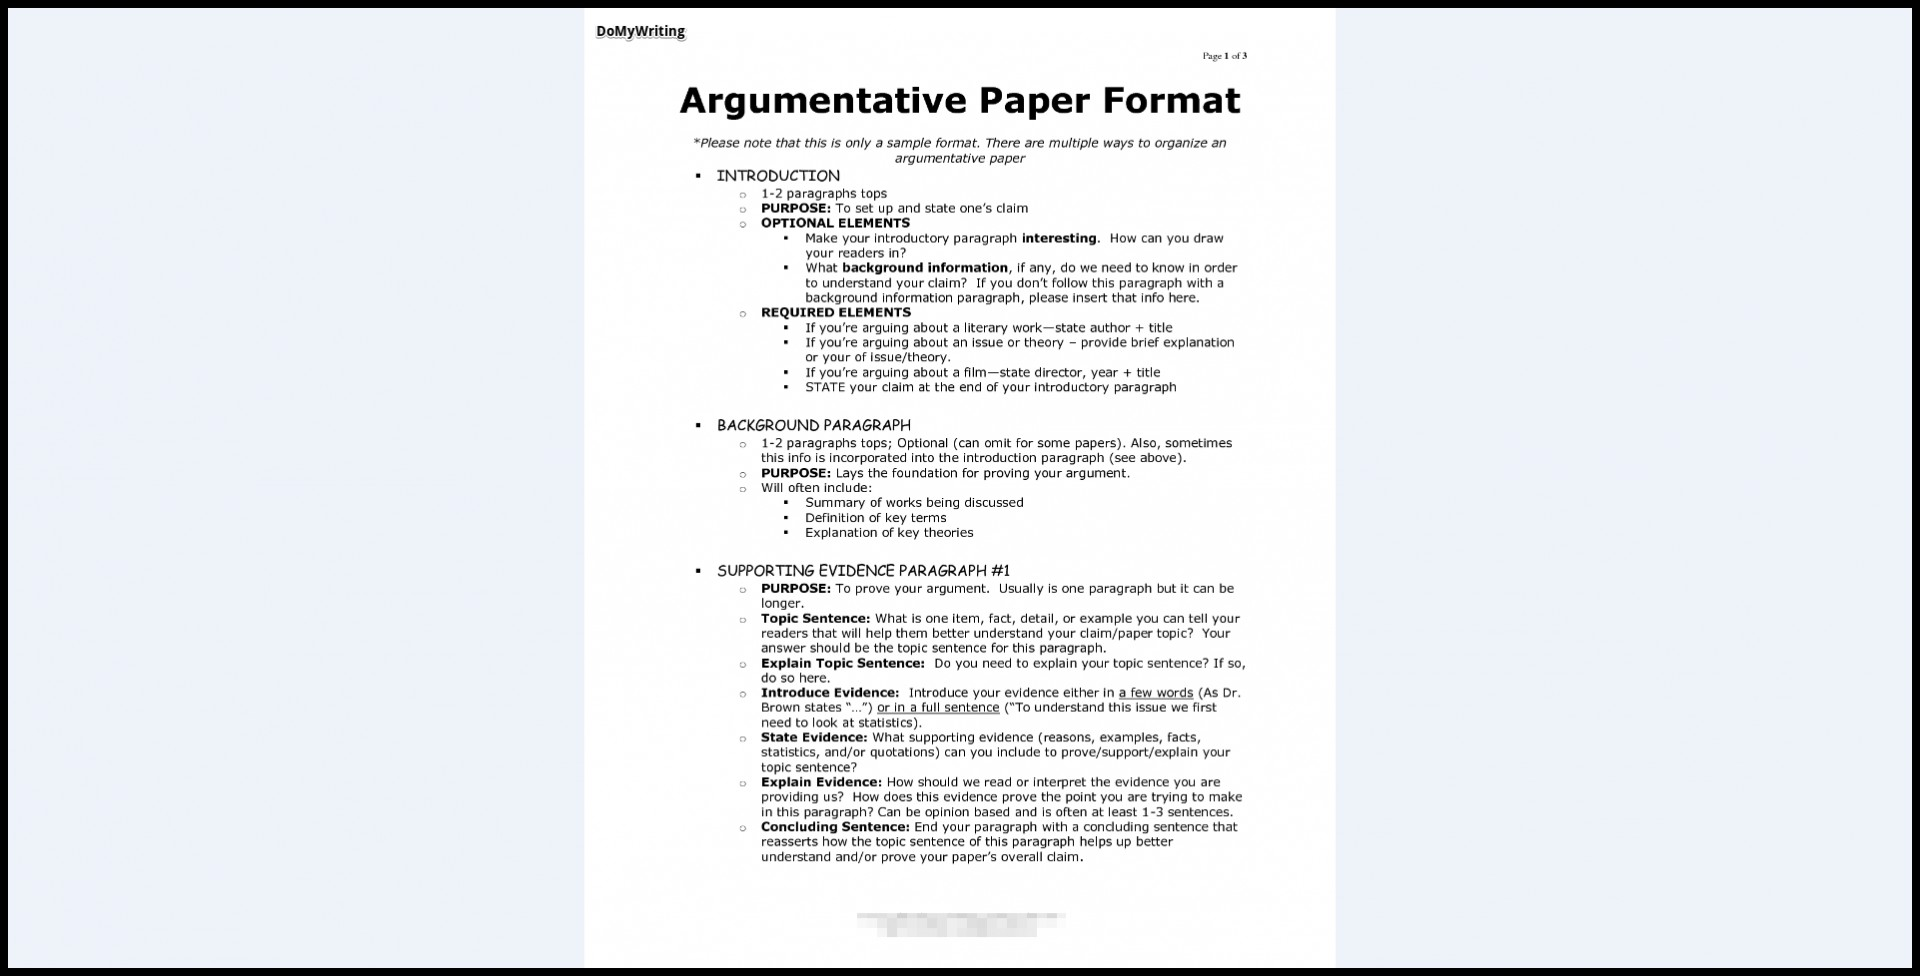 007 Argumentative Research Papers Topics Paper Essay Stupendous Psychology For College English Students 1920